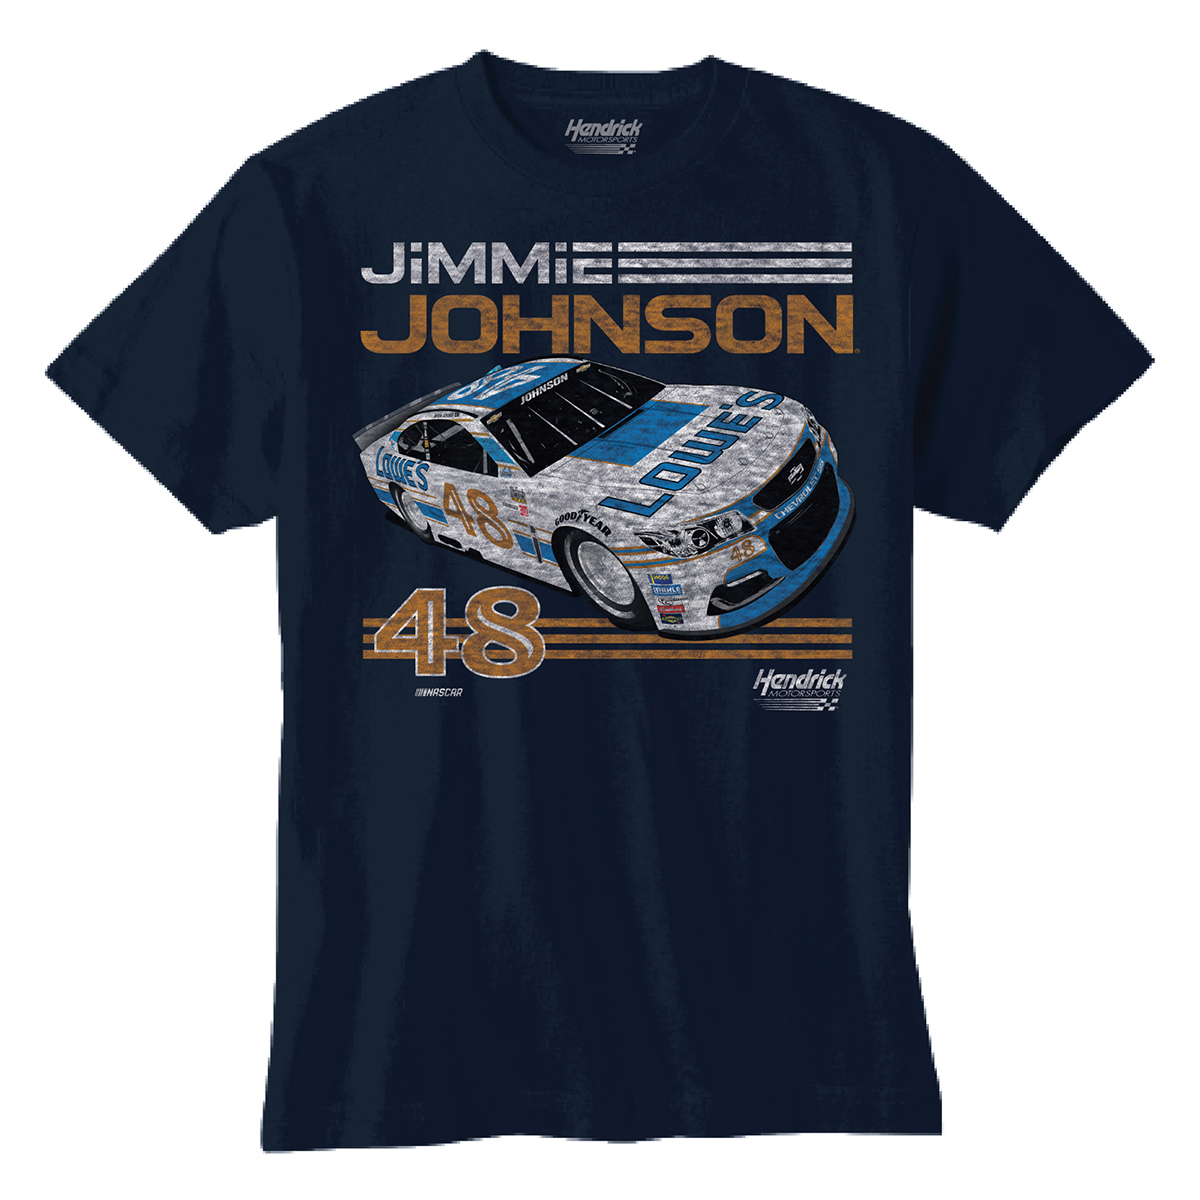 Jimmie Johnson 2017 #48 Darlington Youth Graphic T-shirt